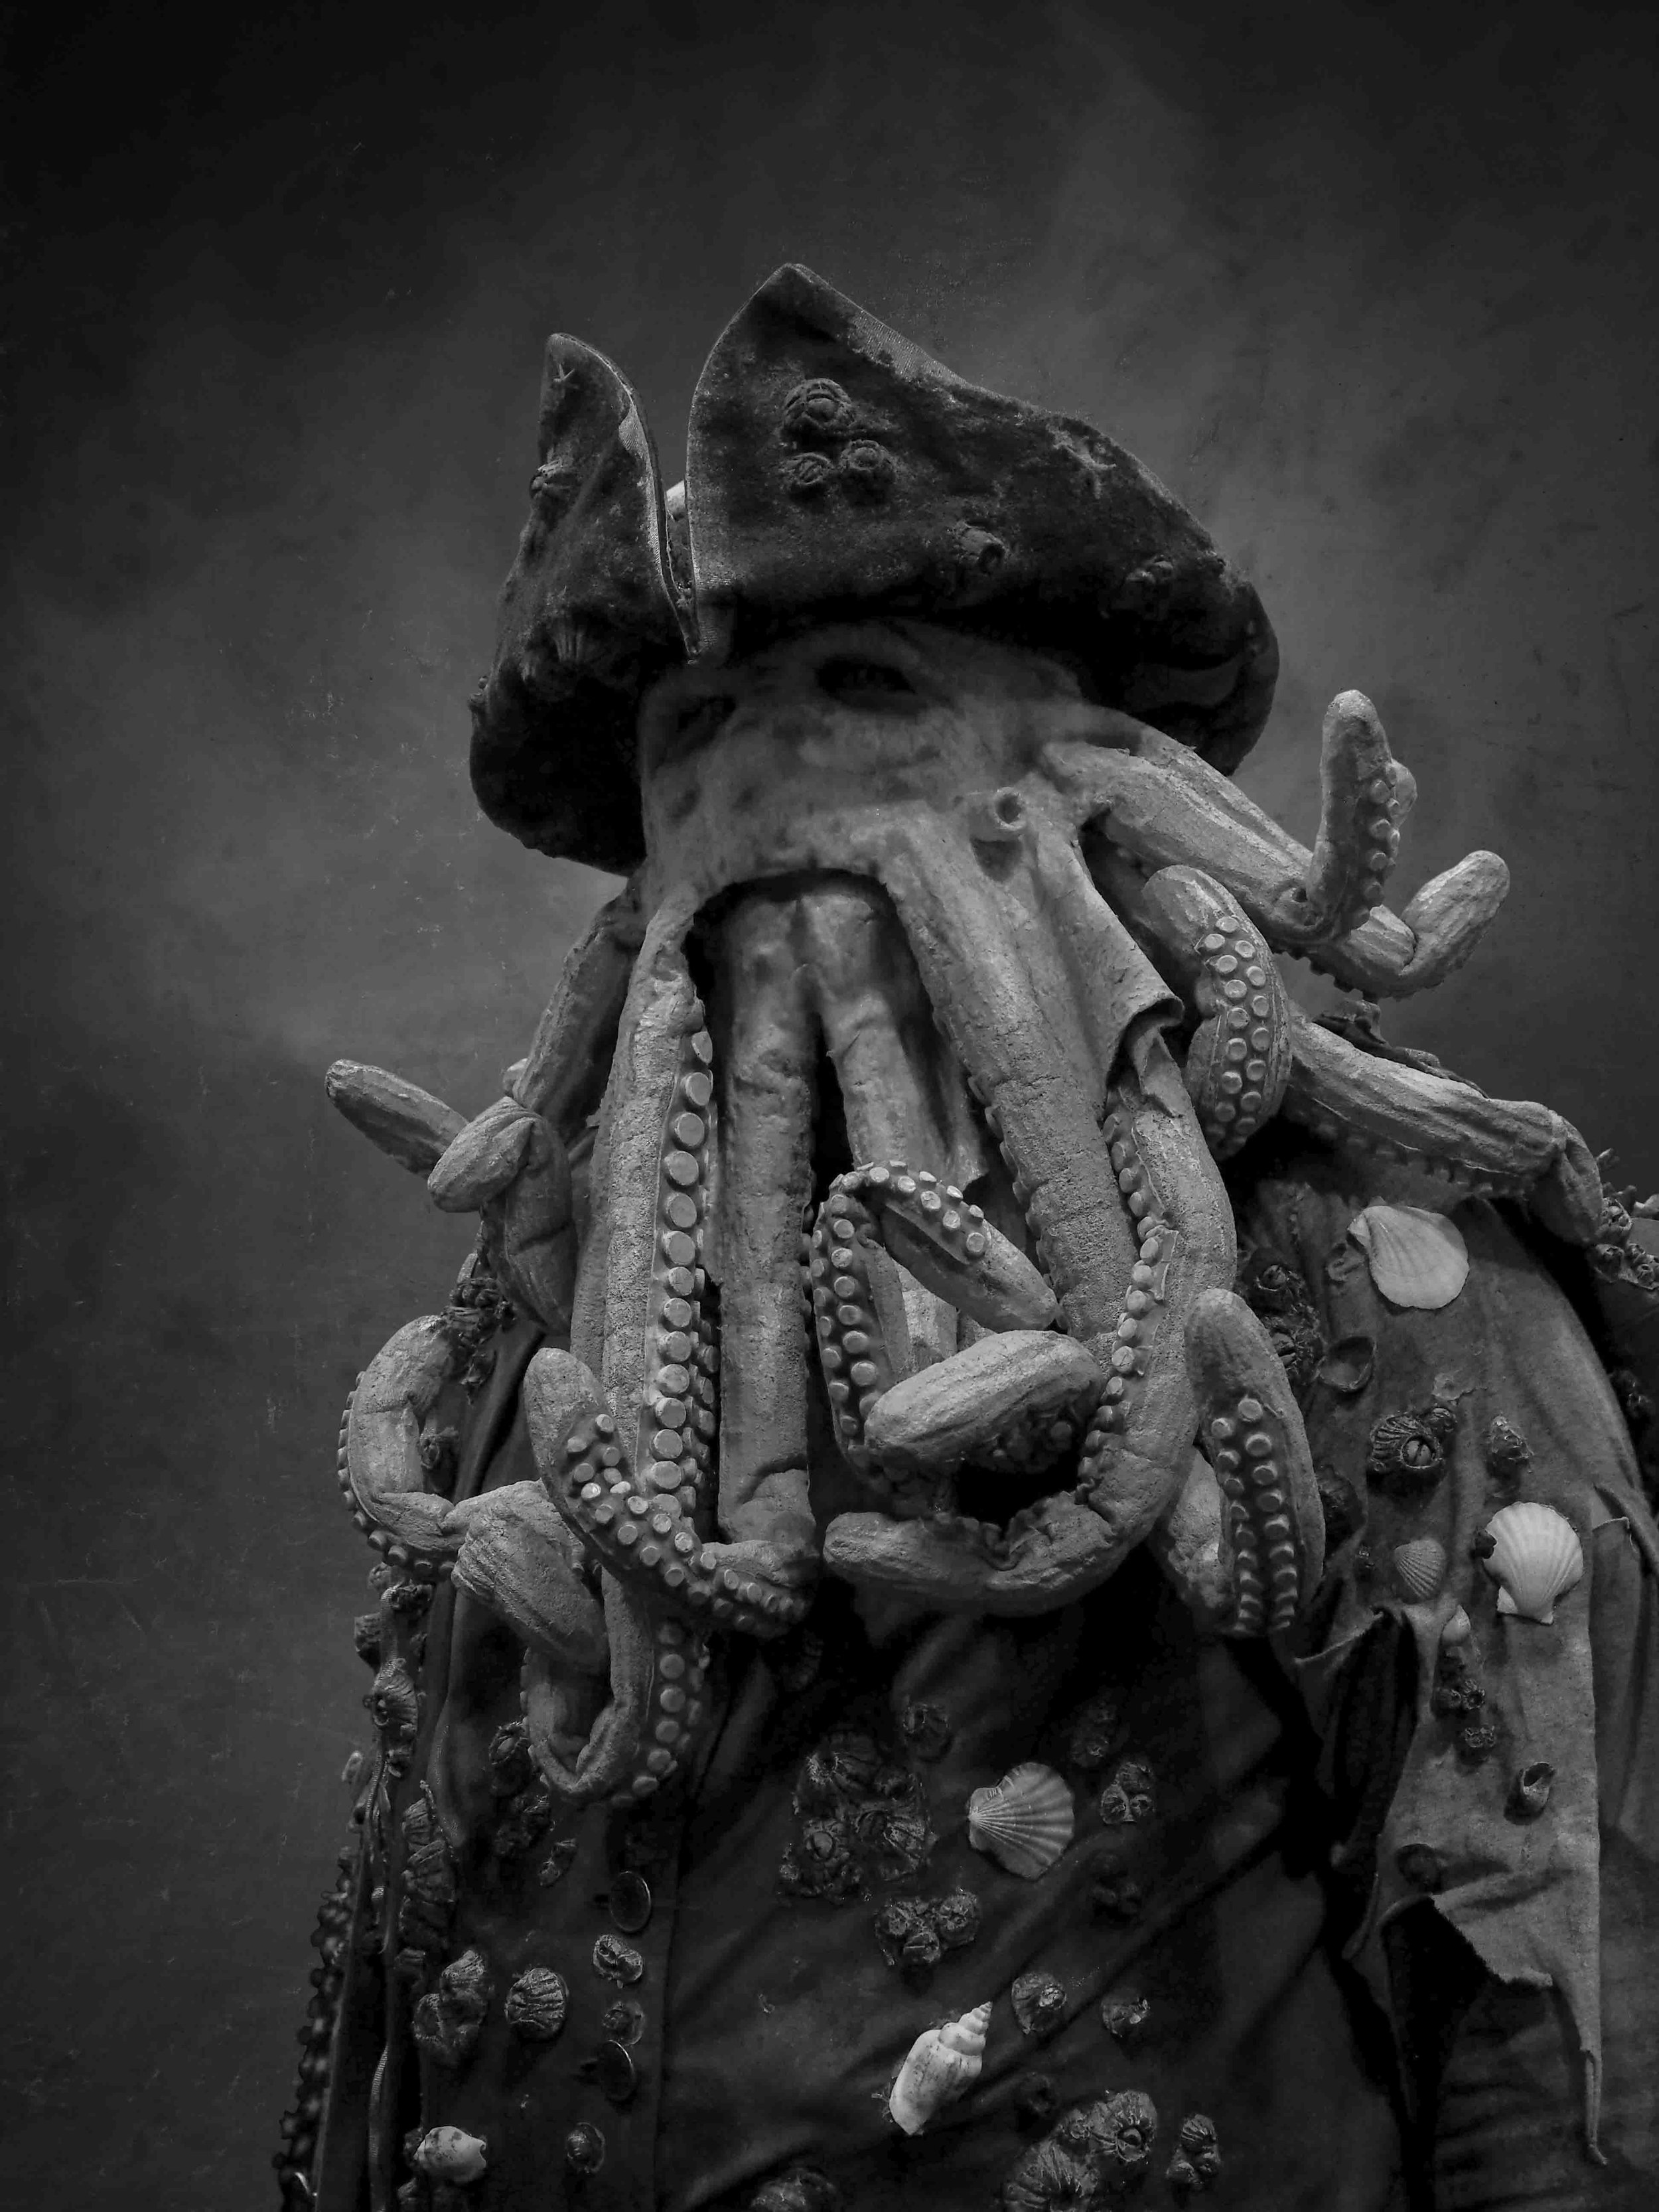 Davy Jones - Inspired by the Pirates of the Caribbean Dead Man's Chest Film Portrayed by Bill Nighy